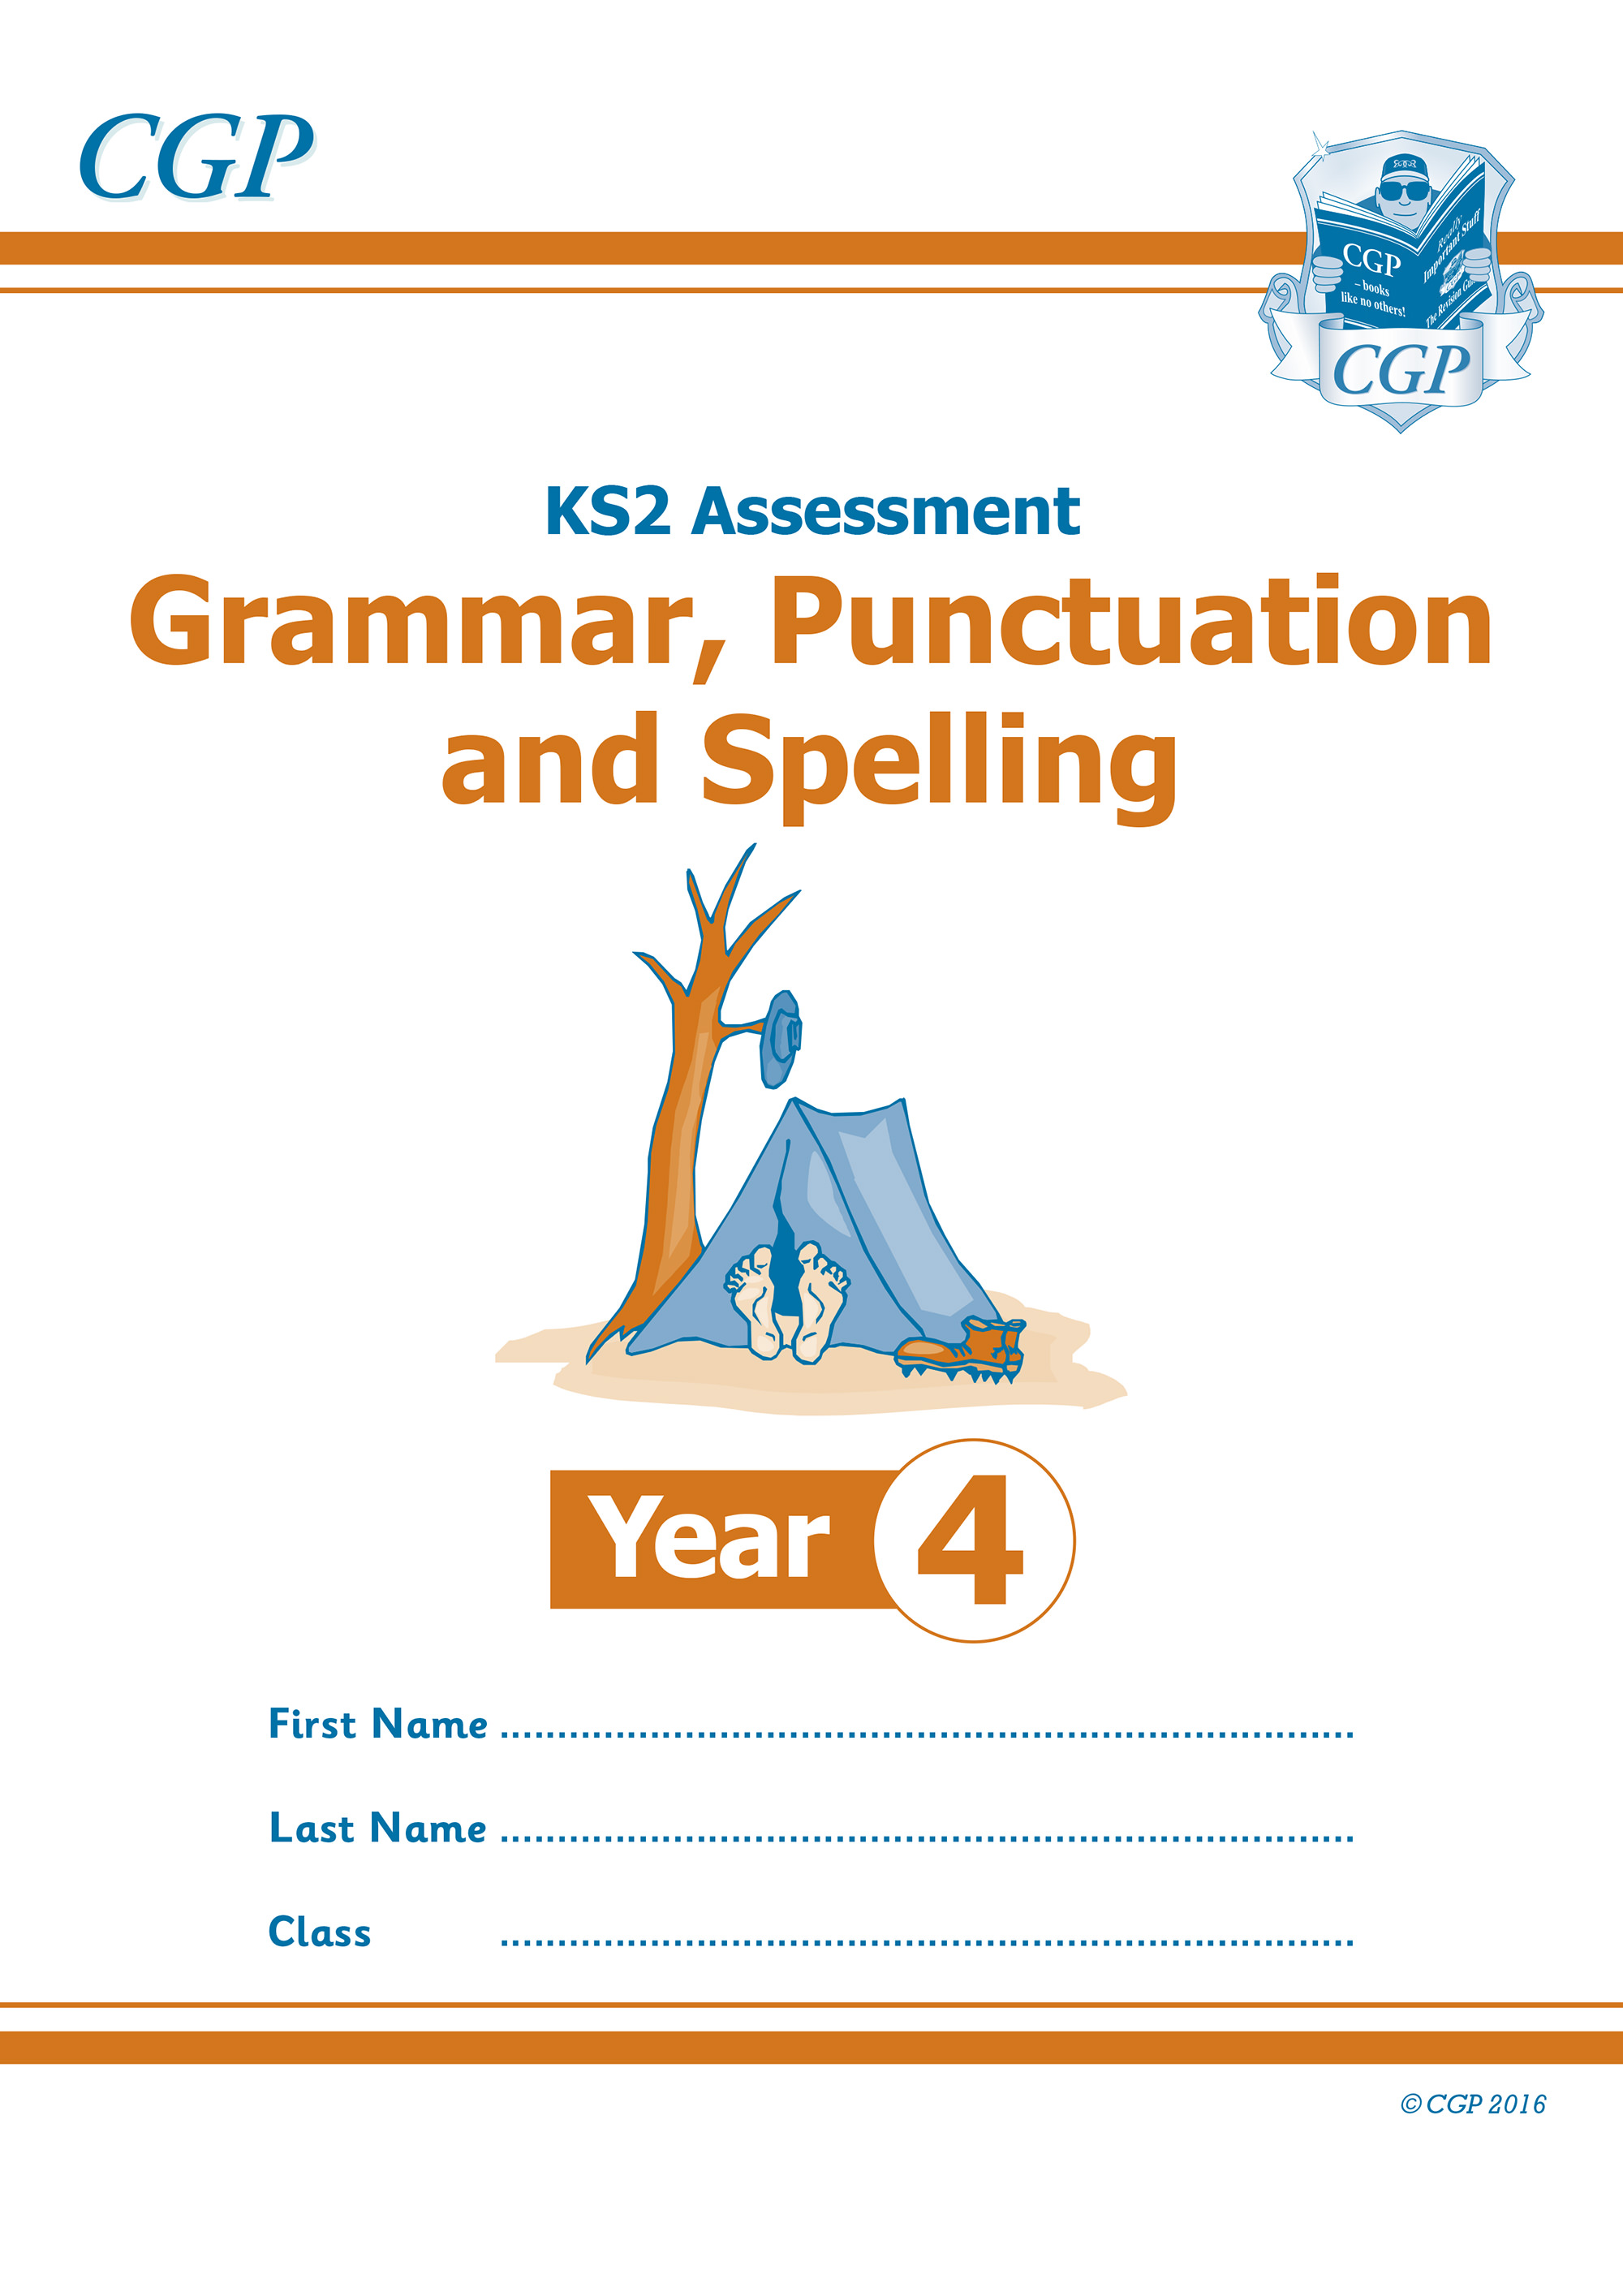 E4GP21 - KS2 Assessment: Spelling, Punctuation & Grammar - Year 4 Test